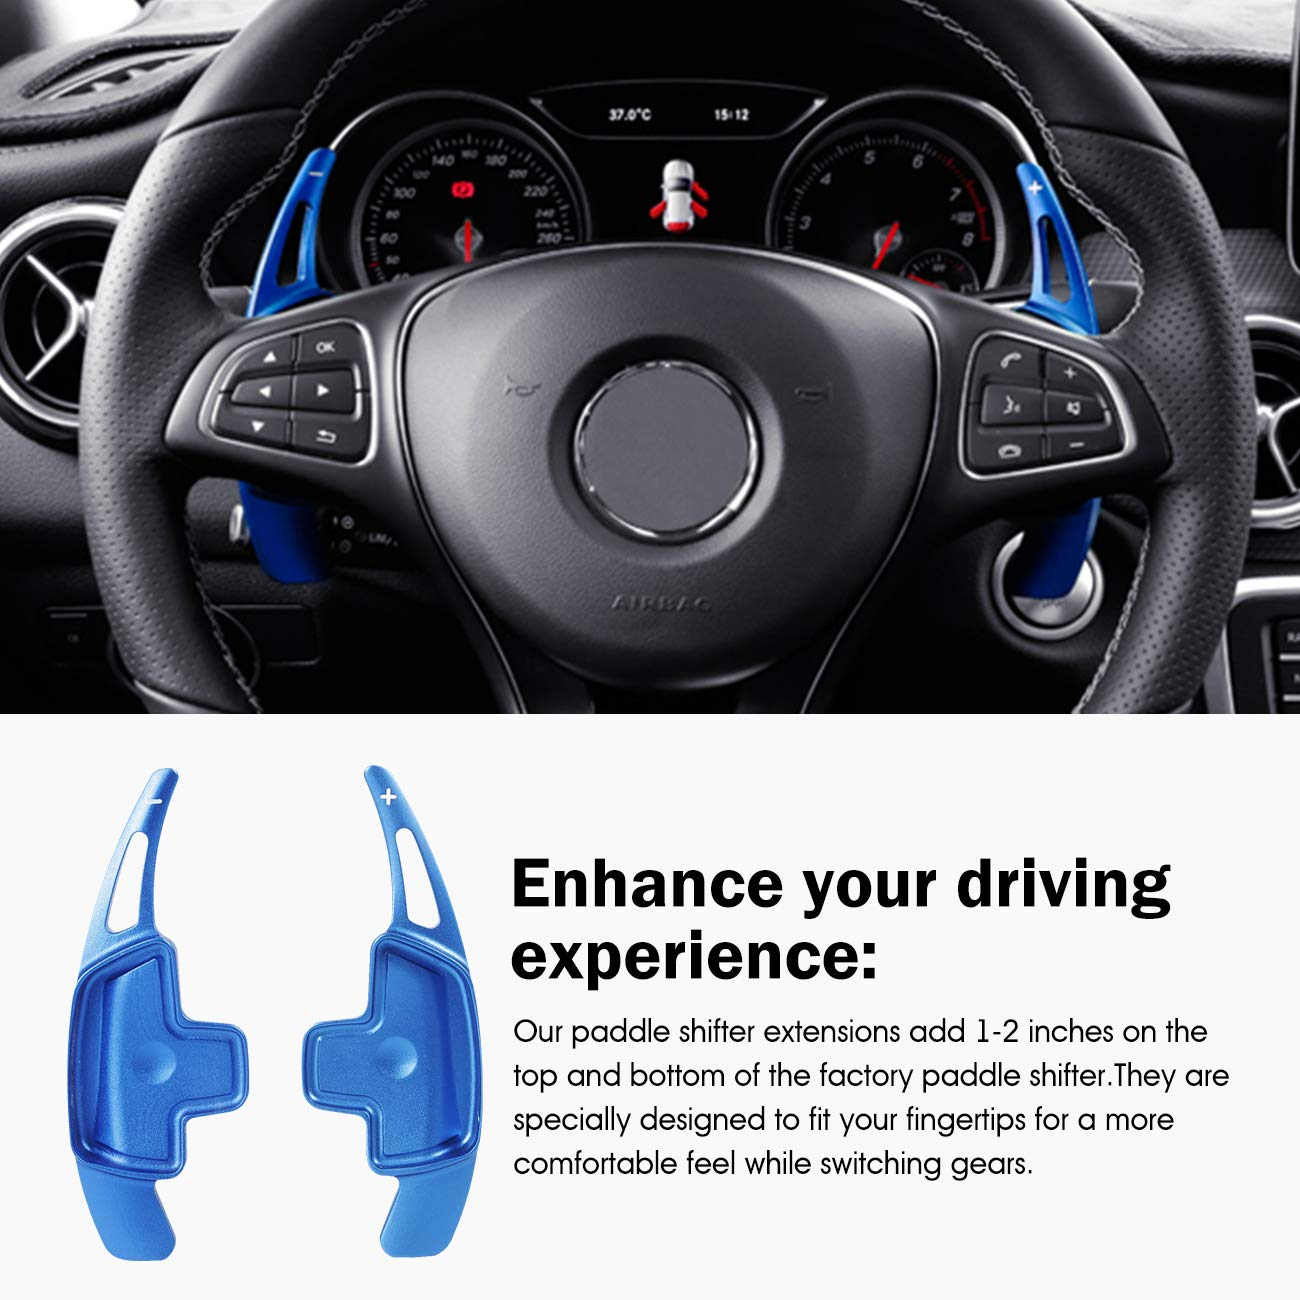 Silver Aluminum Metal Steering Wheel Paddle Shifter Fit For BMW 2 3 4 X1 X2 X3 X4 X5 X6 Series,F Chassis Partol Steering Wheel Paddle Shifter Extensions For BMW